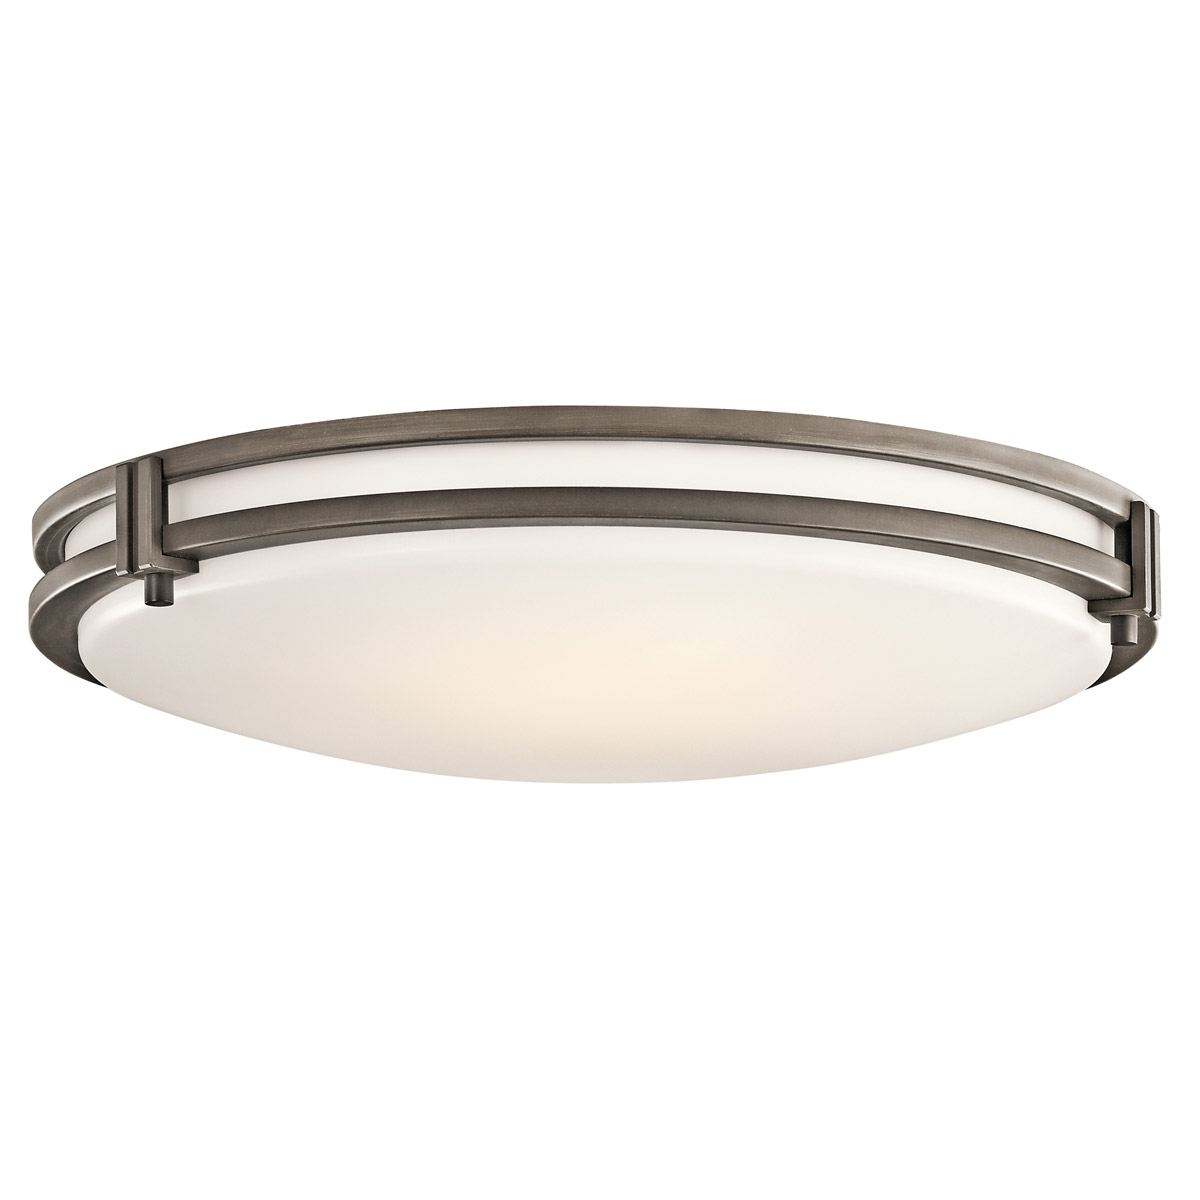 flush mount ceiling light fixtures kichler 10828oz flush mount ceiling fixture 10148